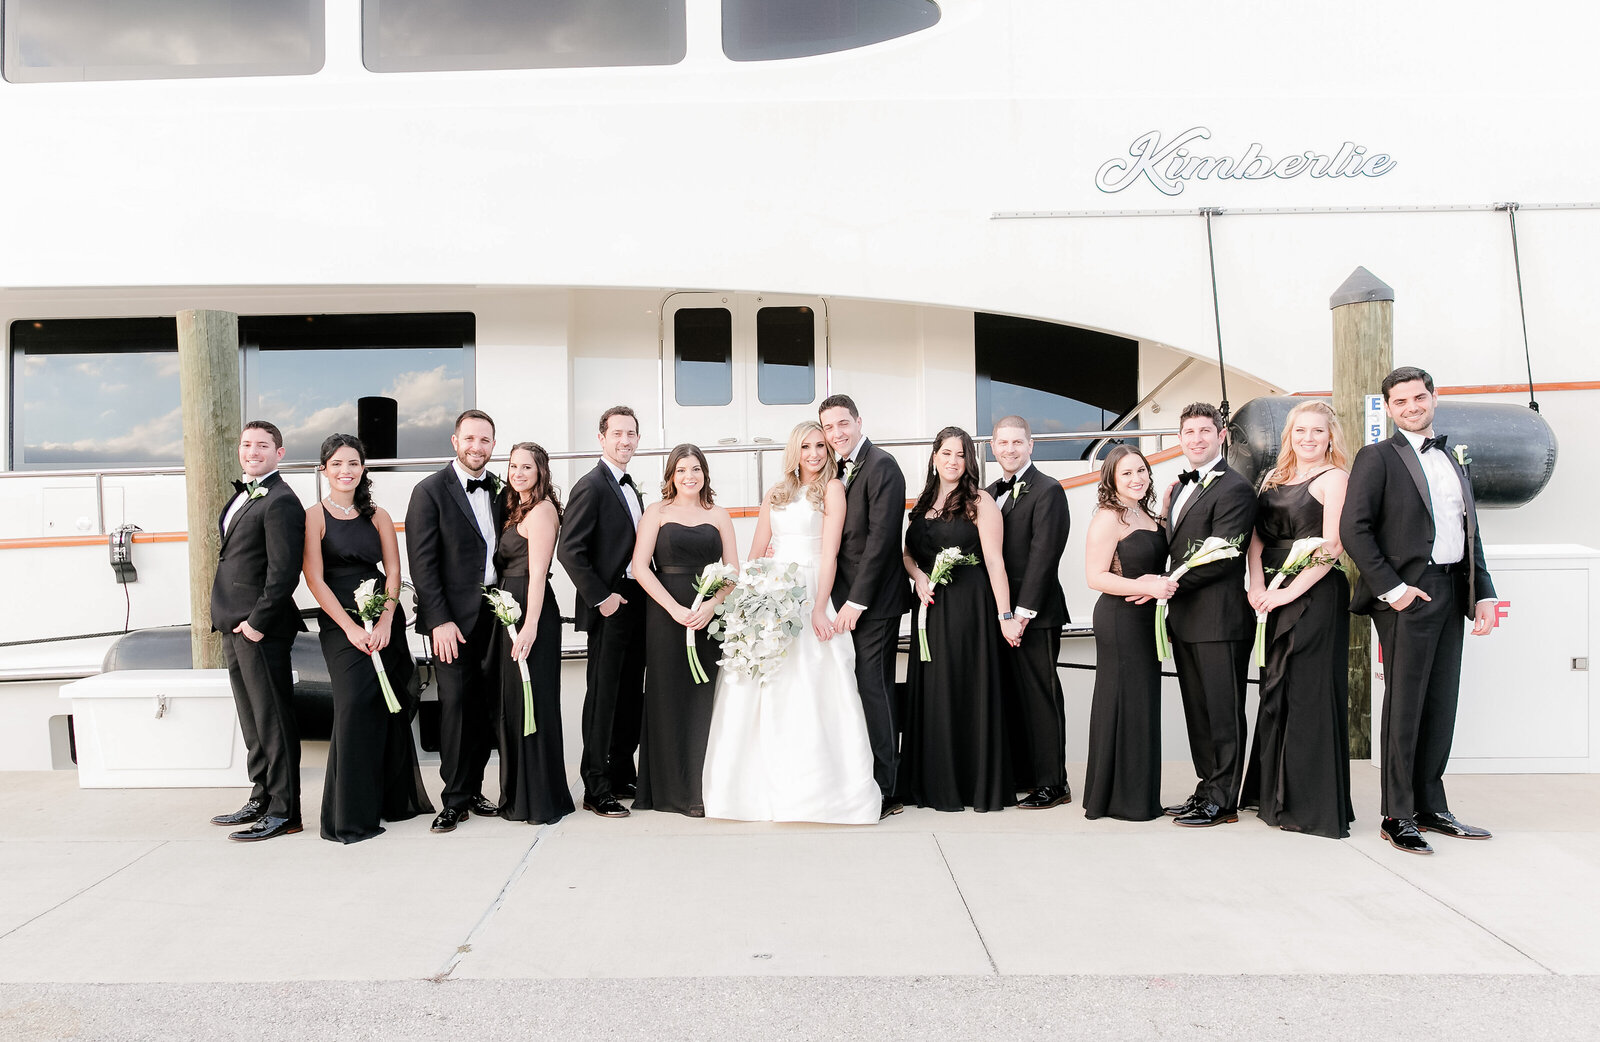 Wedding Party Photos Outdoors